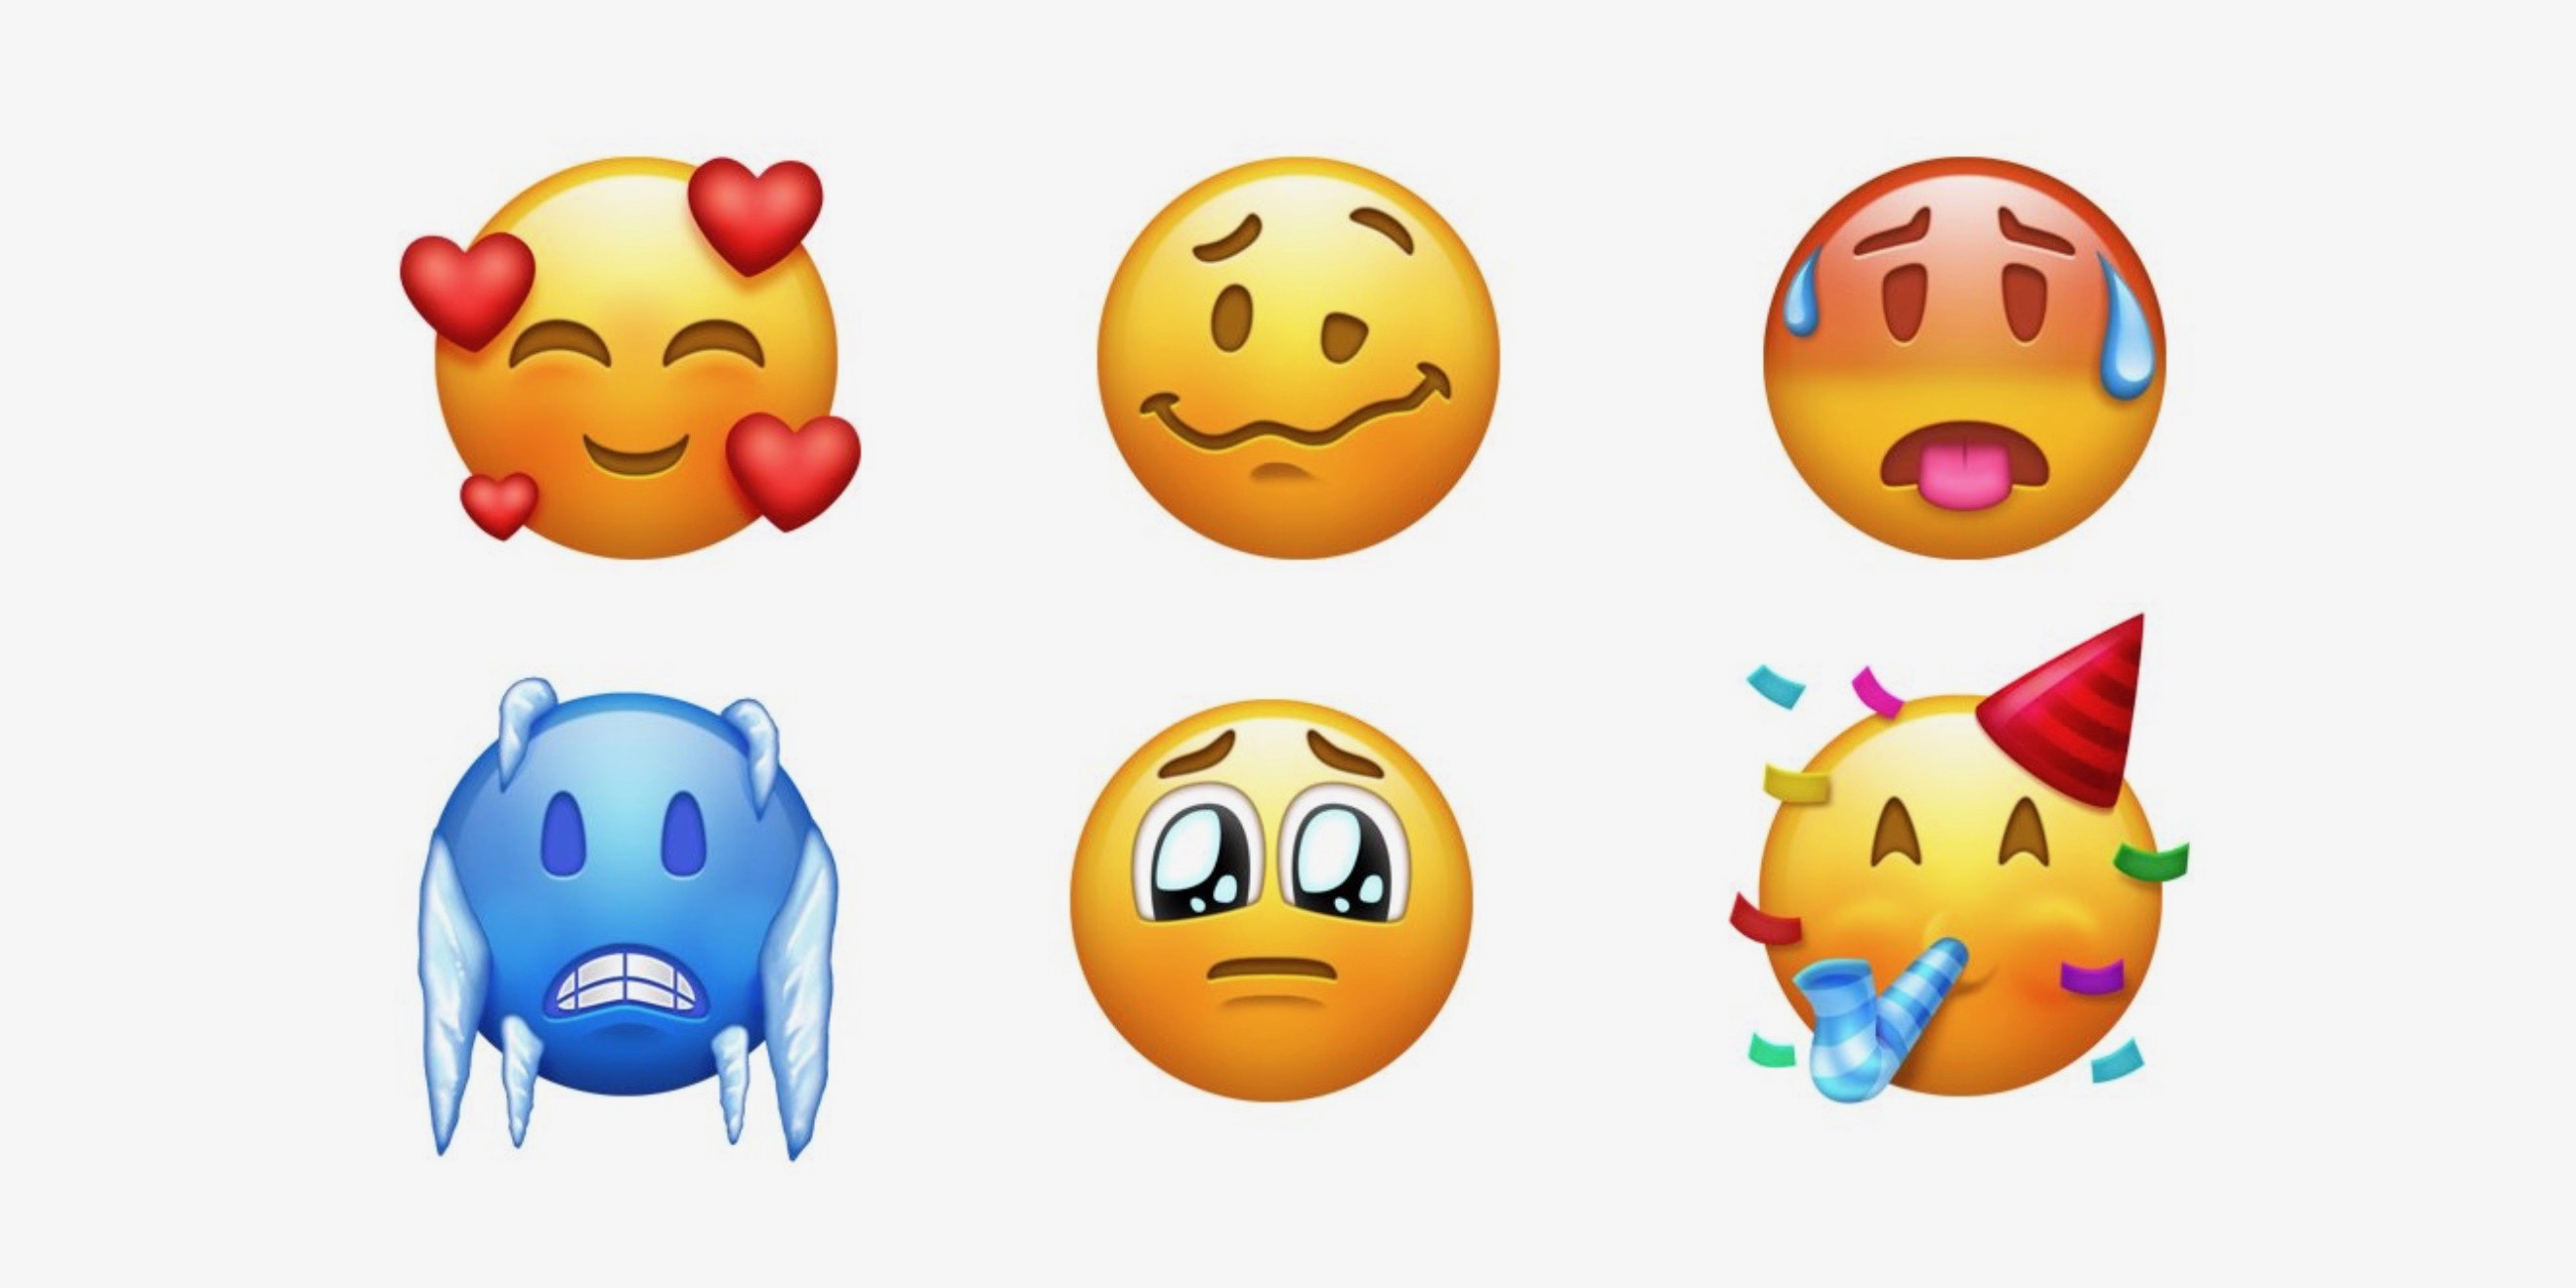 Here are the 100+ new emoji arriving on iPhone and iPad this